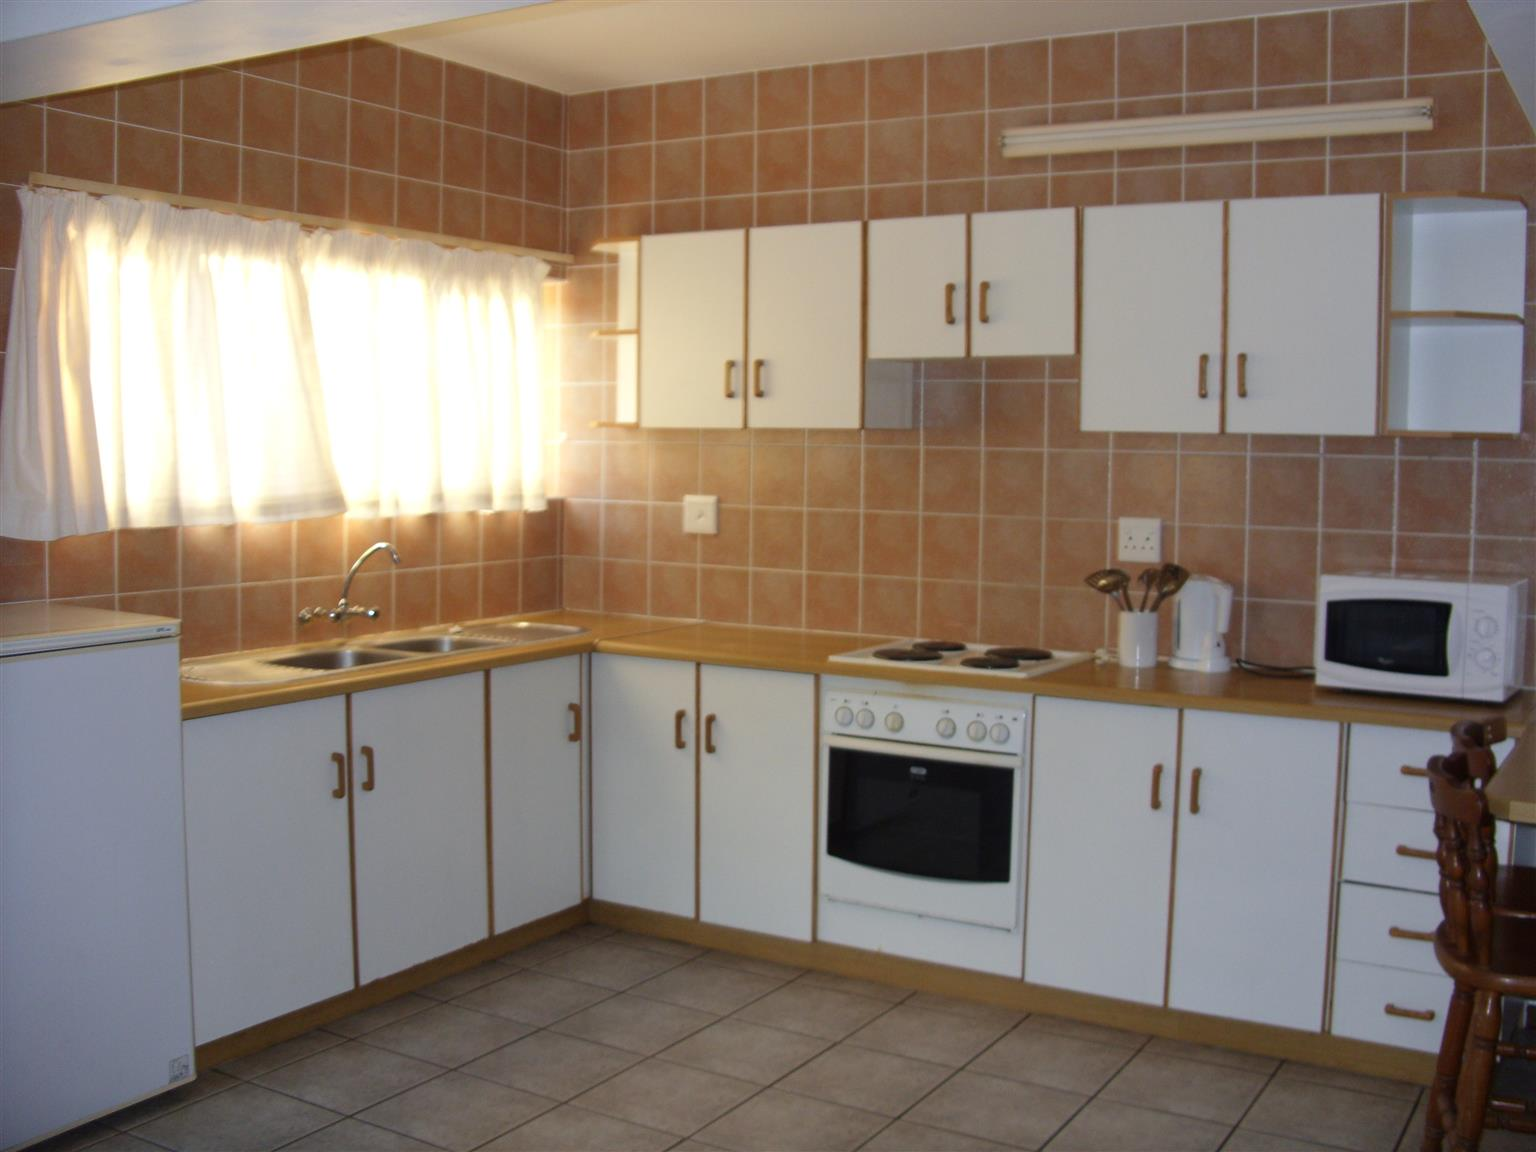 Ground floor 1 Bedroom Furnished Flat R4500 pm Shelly Beach available immediately - FURNISHED FLAT TO LET